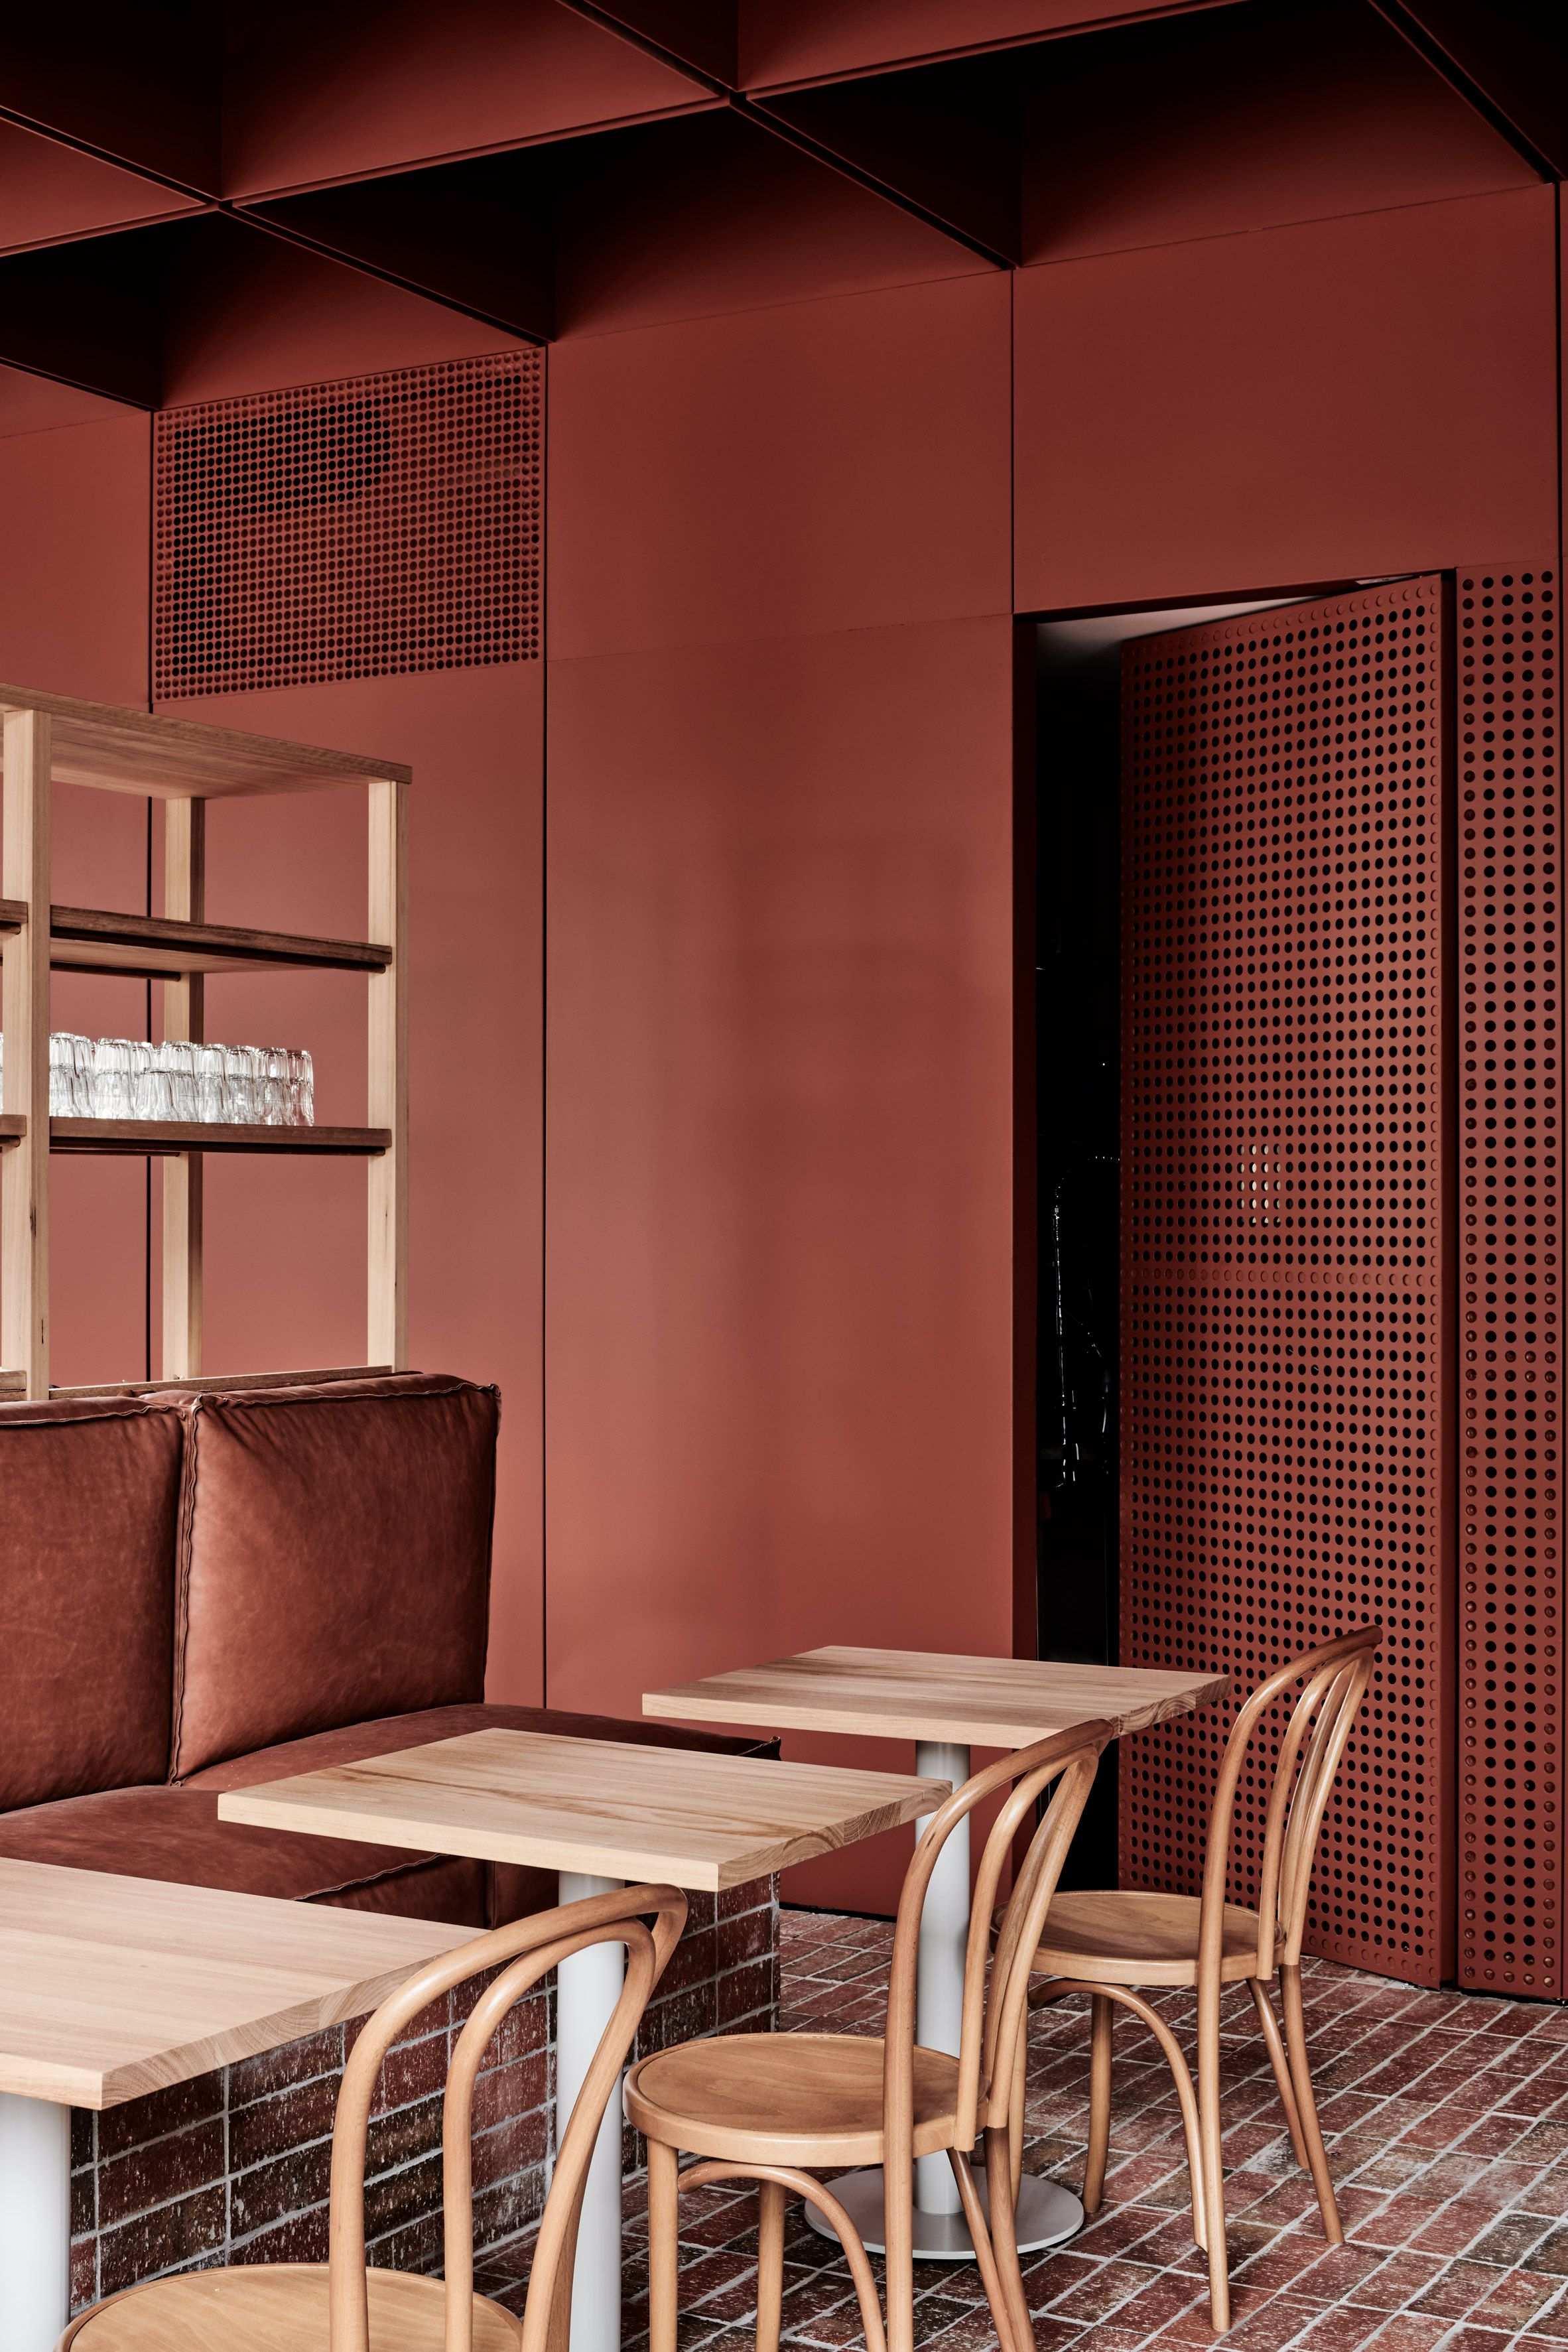 Bentwood cafe by ritz ghougassian griffe m bel raum - Farbkonzept haus ...